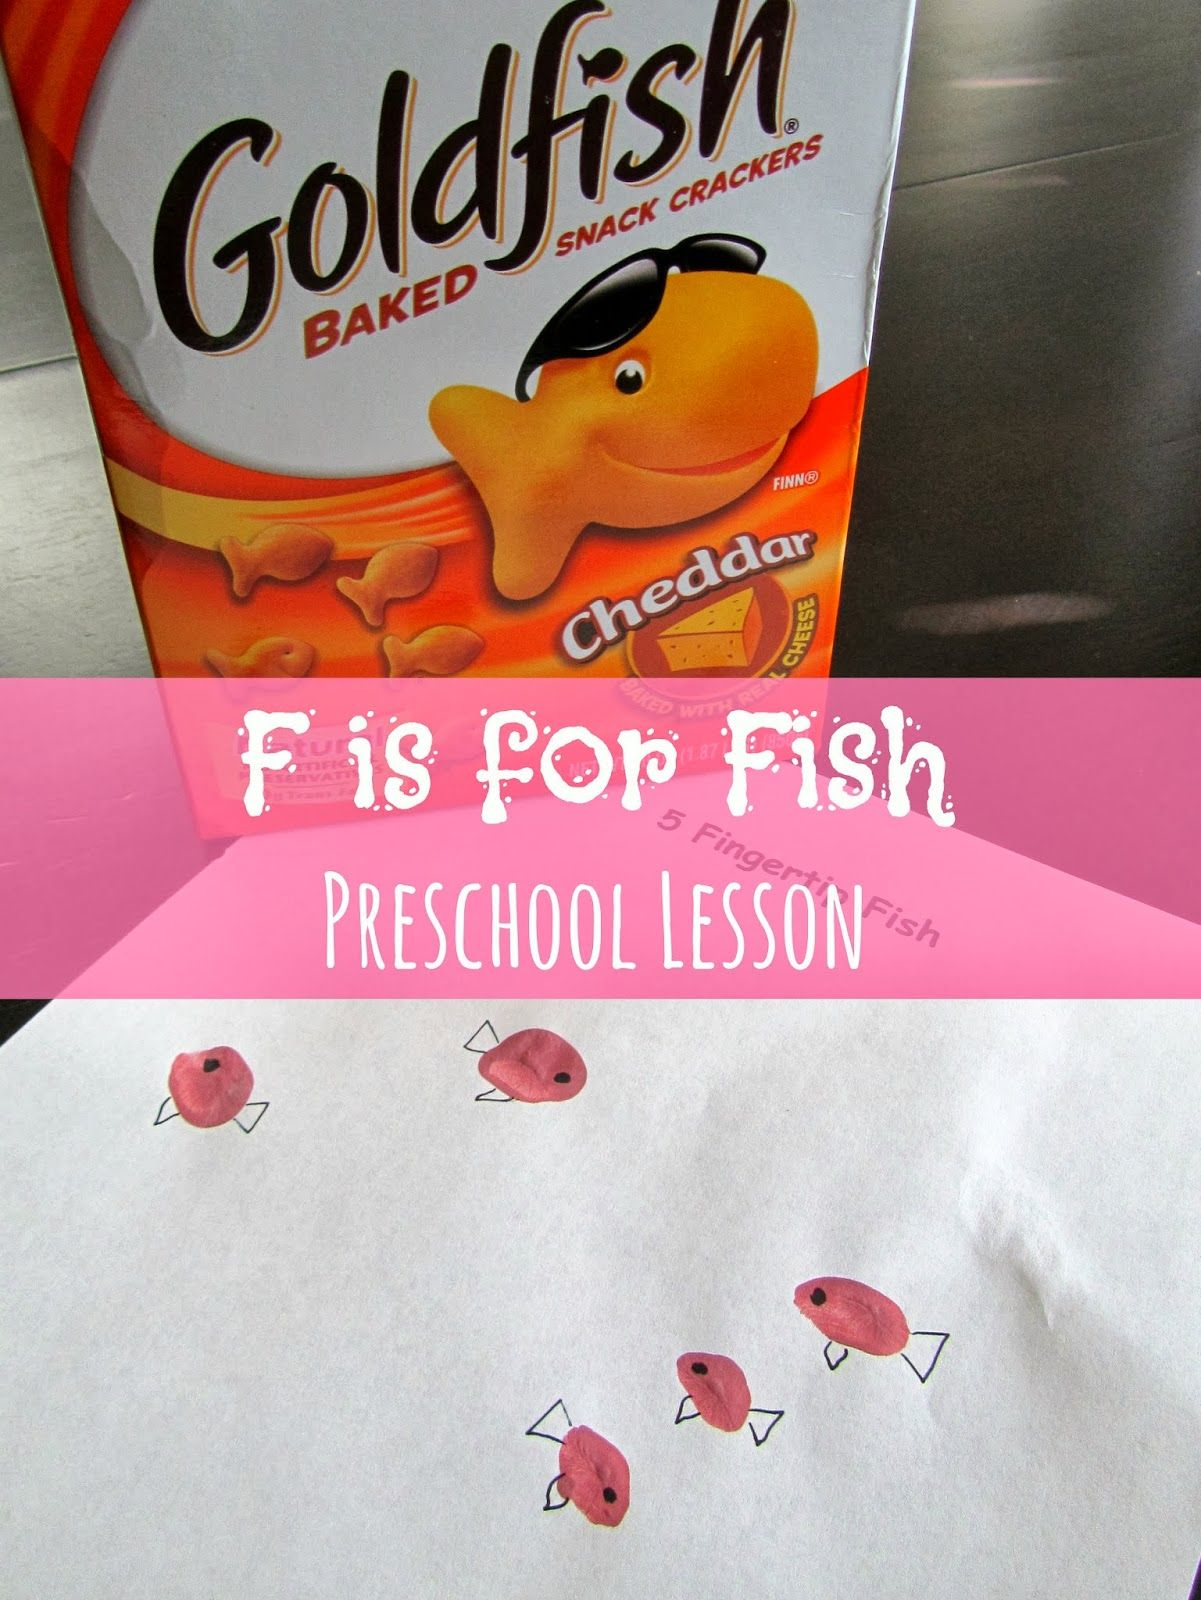 F is for fish preschool lesson - teaches letter F, color pink, and ...